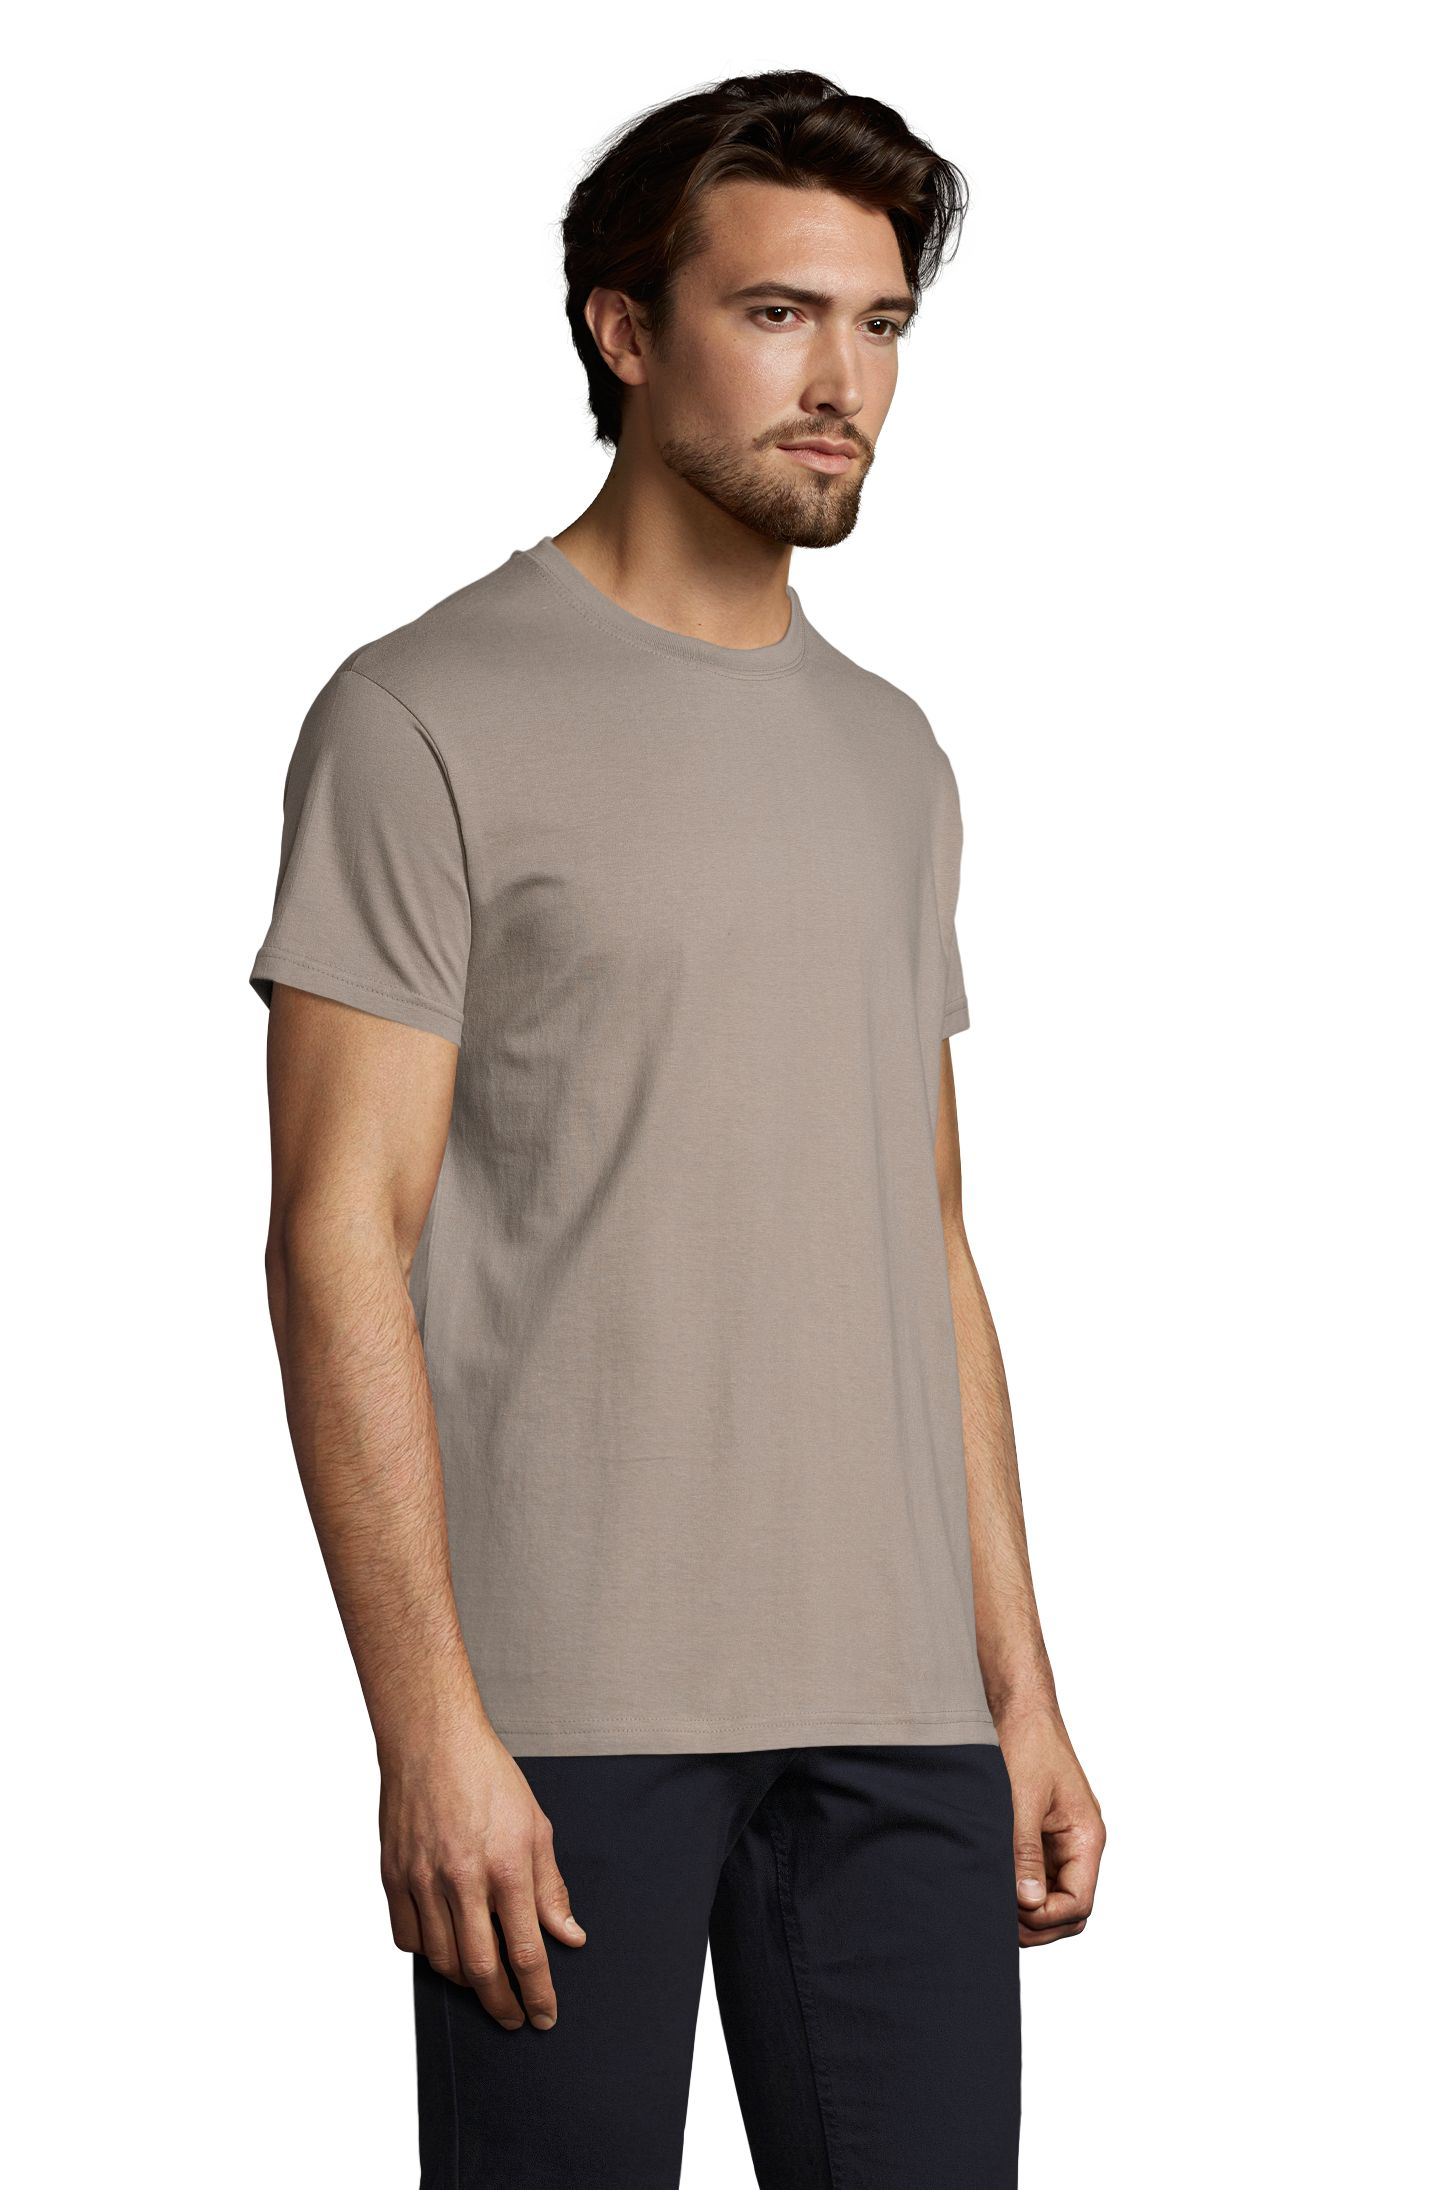 380 - Light grey